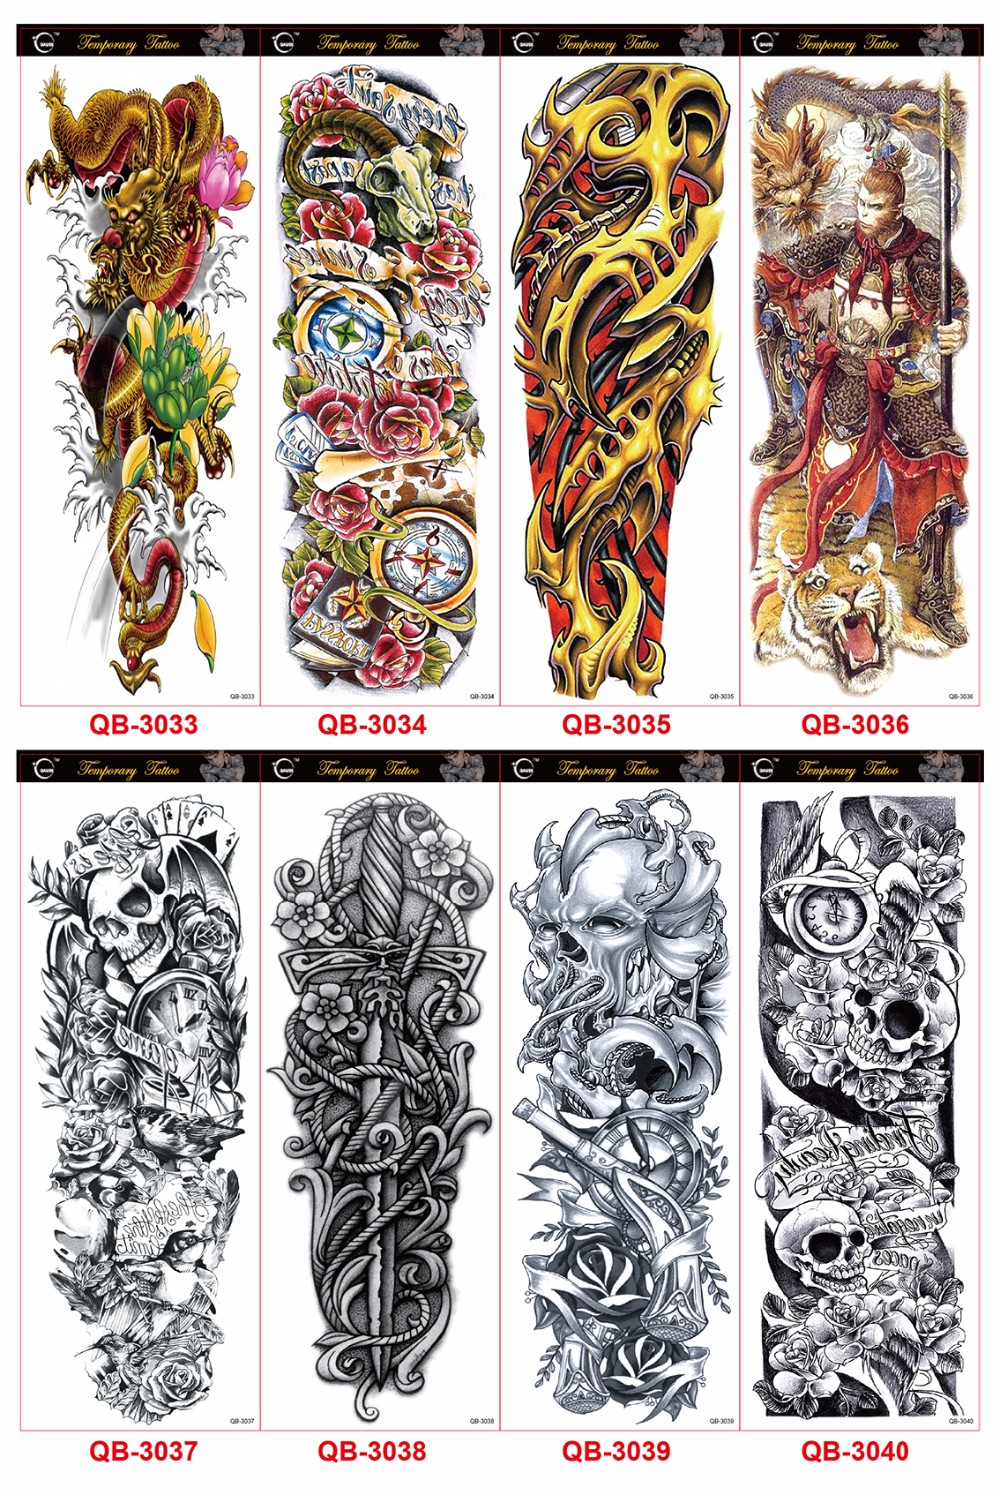 Waterproof Temporary Tattoo Sticker full arm large size robot arm tatto flash tatoo fake tattoos sleeve for men women 19 8